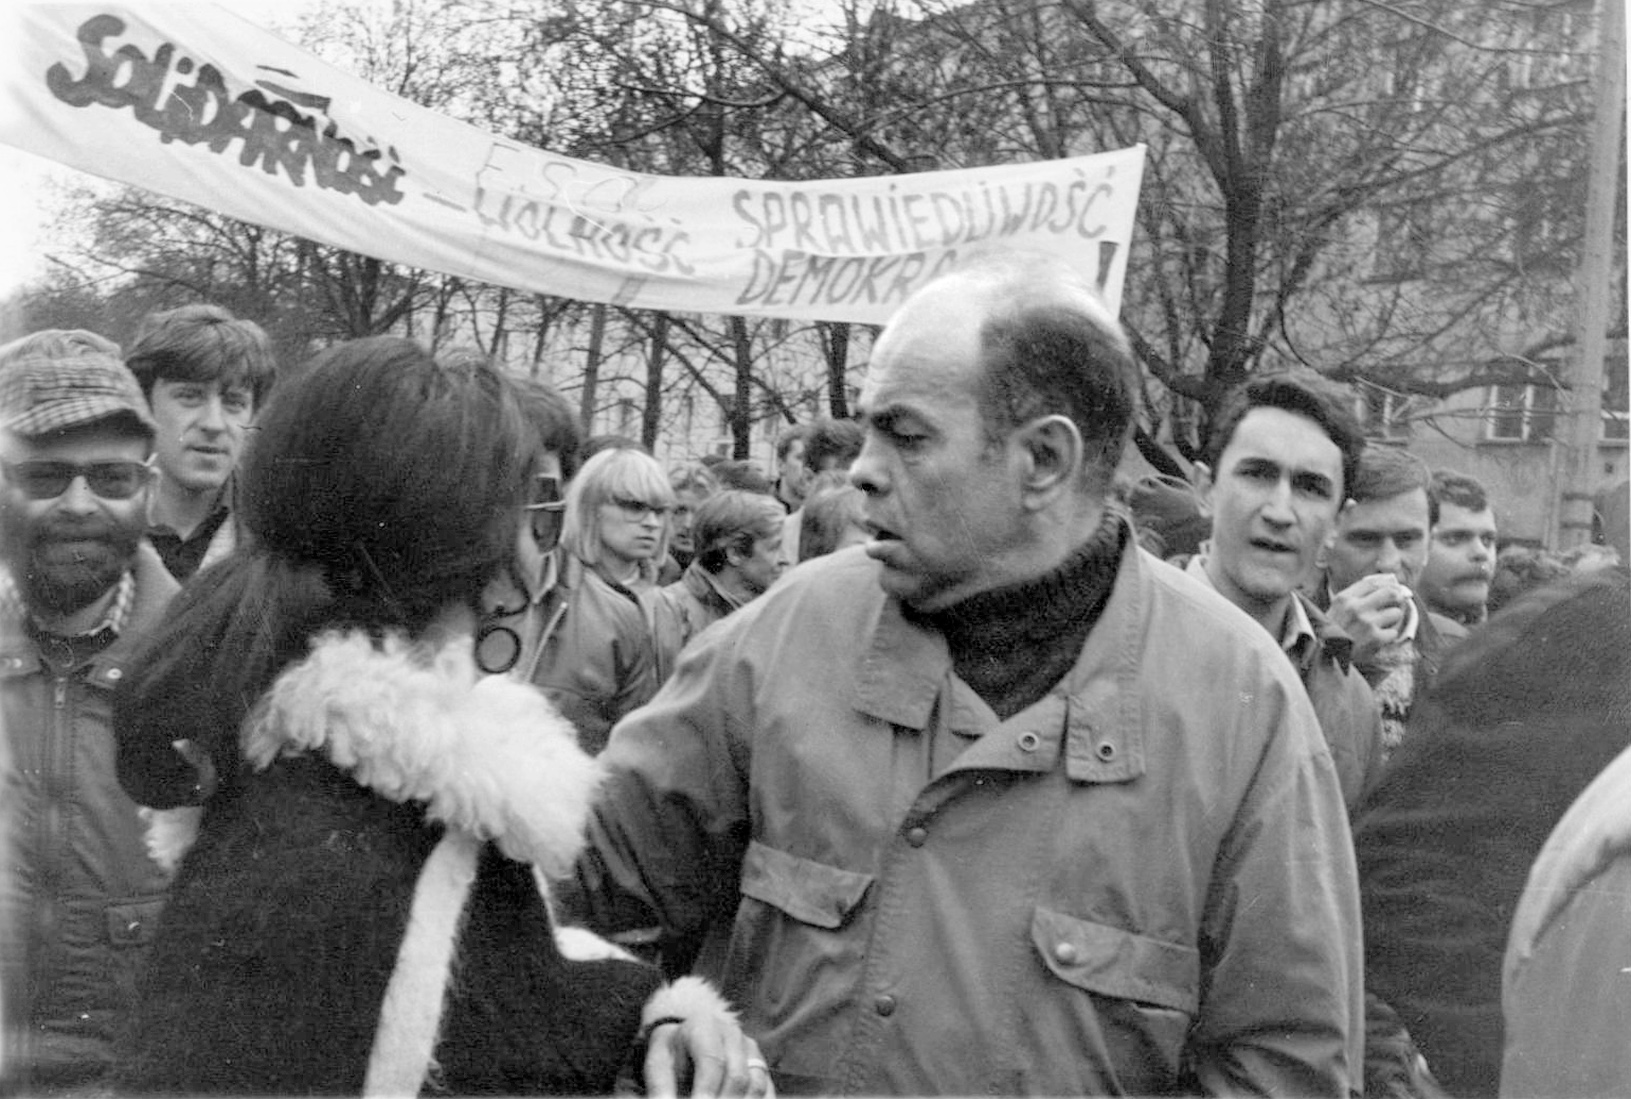 Black - white photograph of the 1989 May 1 demonstration Day with the participation of the opposition and Jacek Kuron, 24 September 2013, Black - white photograph of the 1989 May 1 demonstration Day with the participation of the opposition and Jacek Kuron. Author: Andrzej Iwański (Scanned by Europeana 1989) (CC BY-SA 3.0).